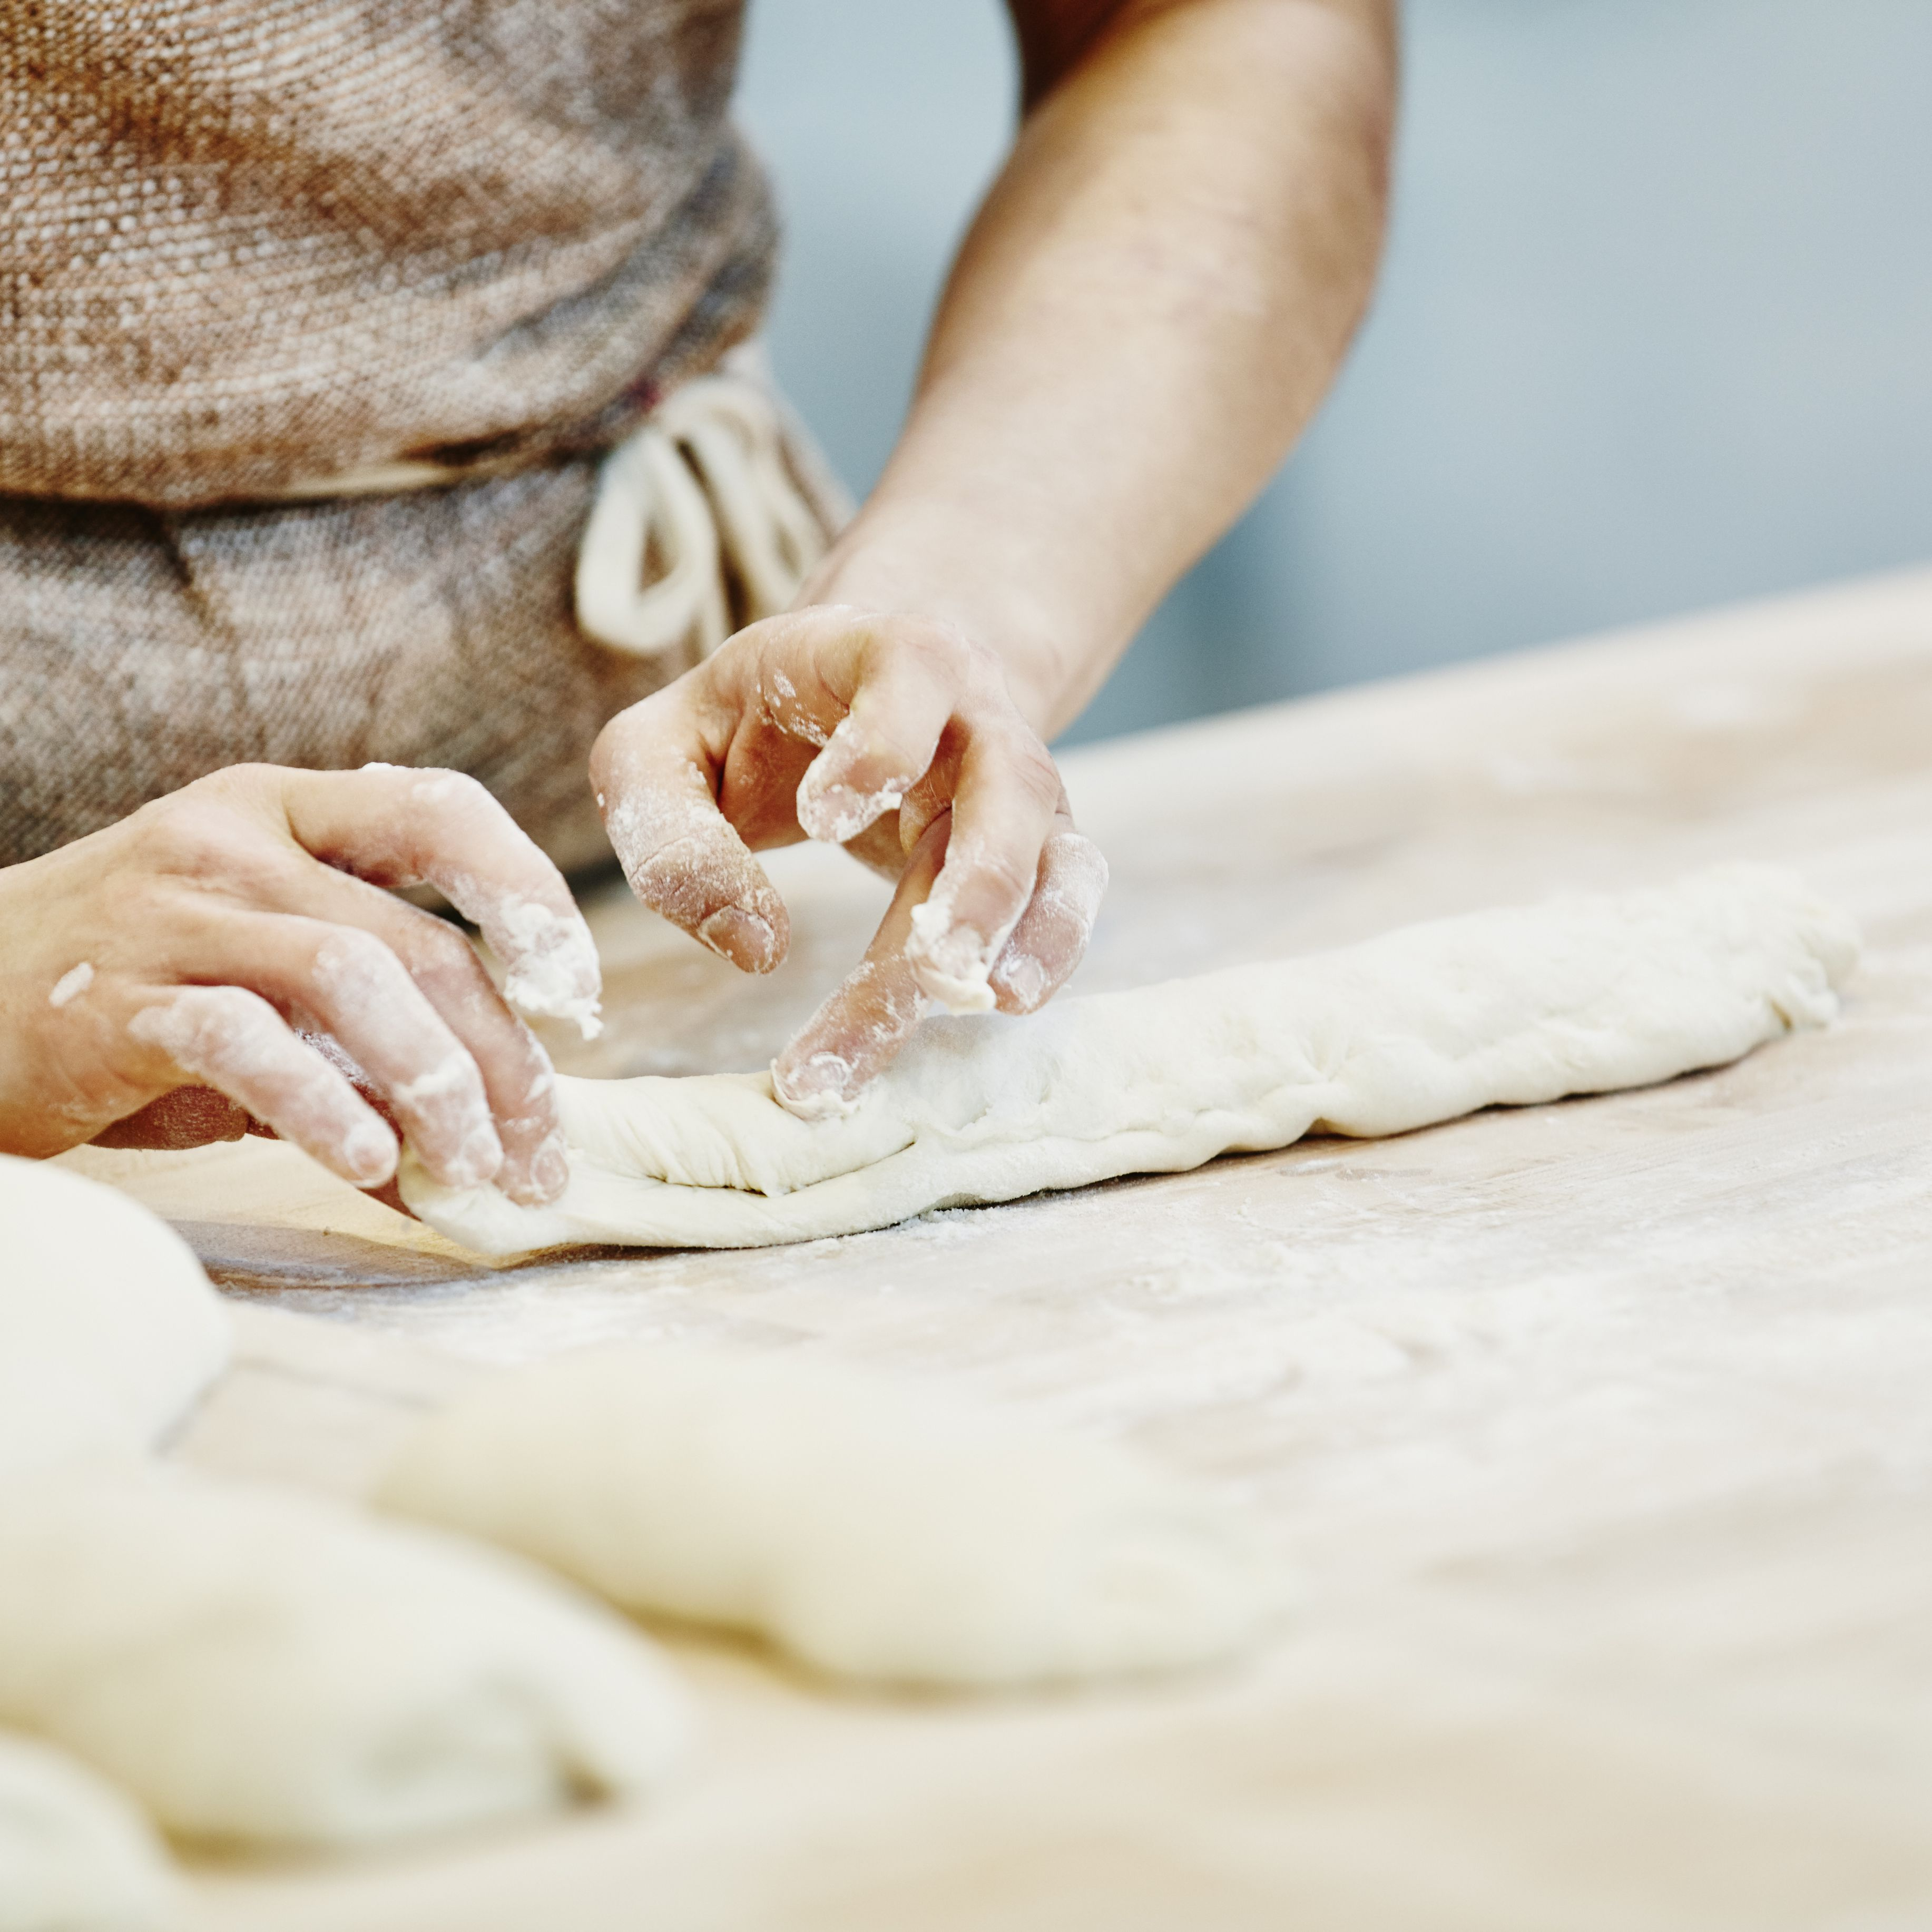 Wondrous How To Start A Baking Business From Your Home Interior Design Ideas Greaswefileorg